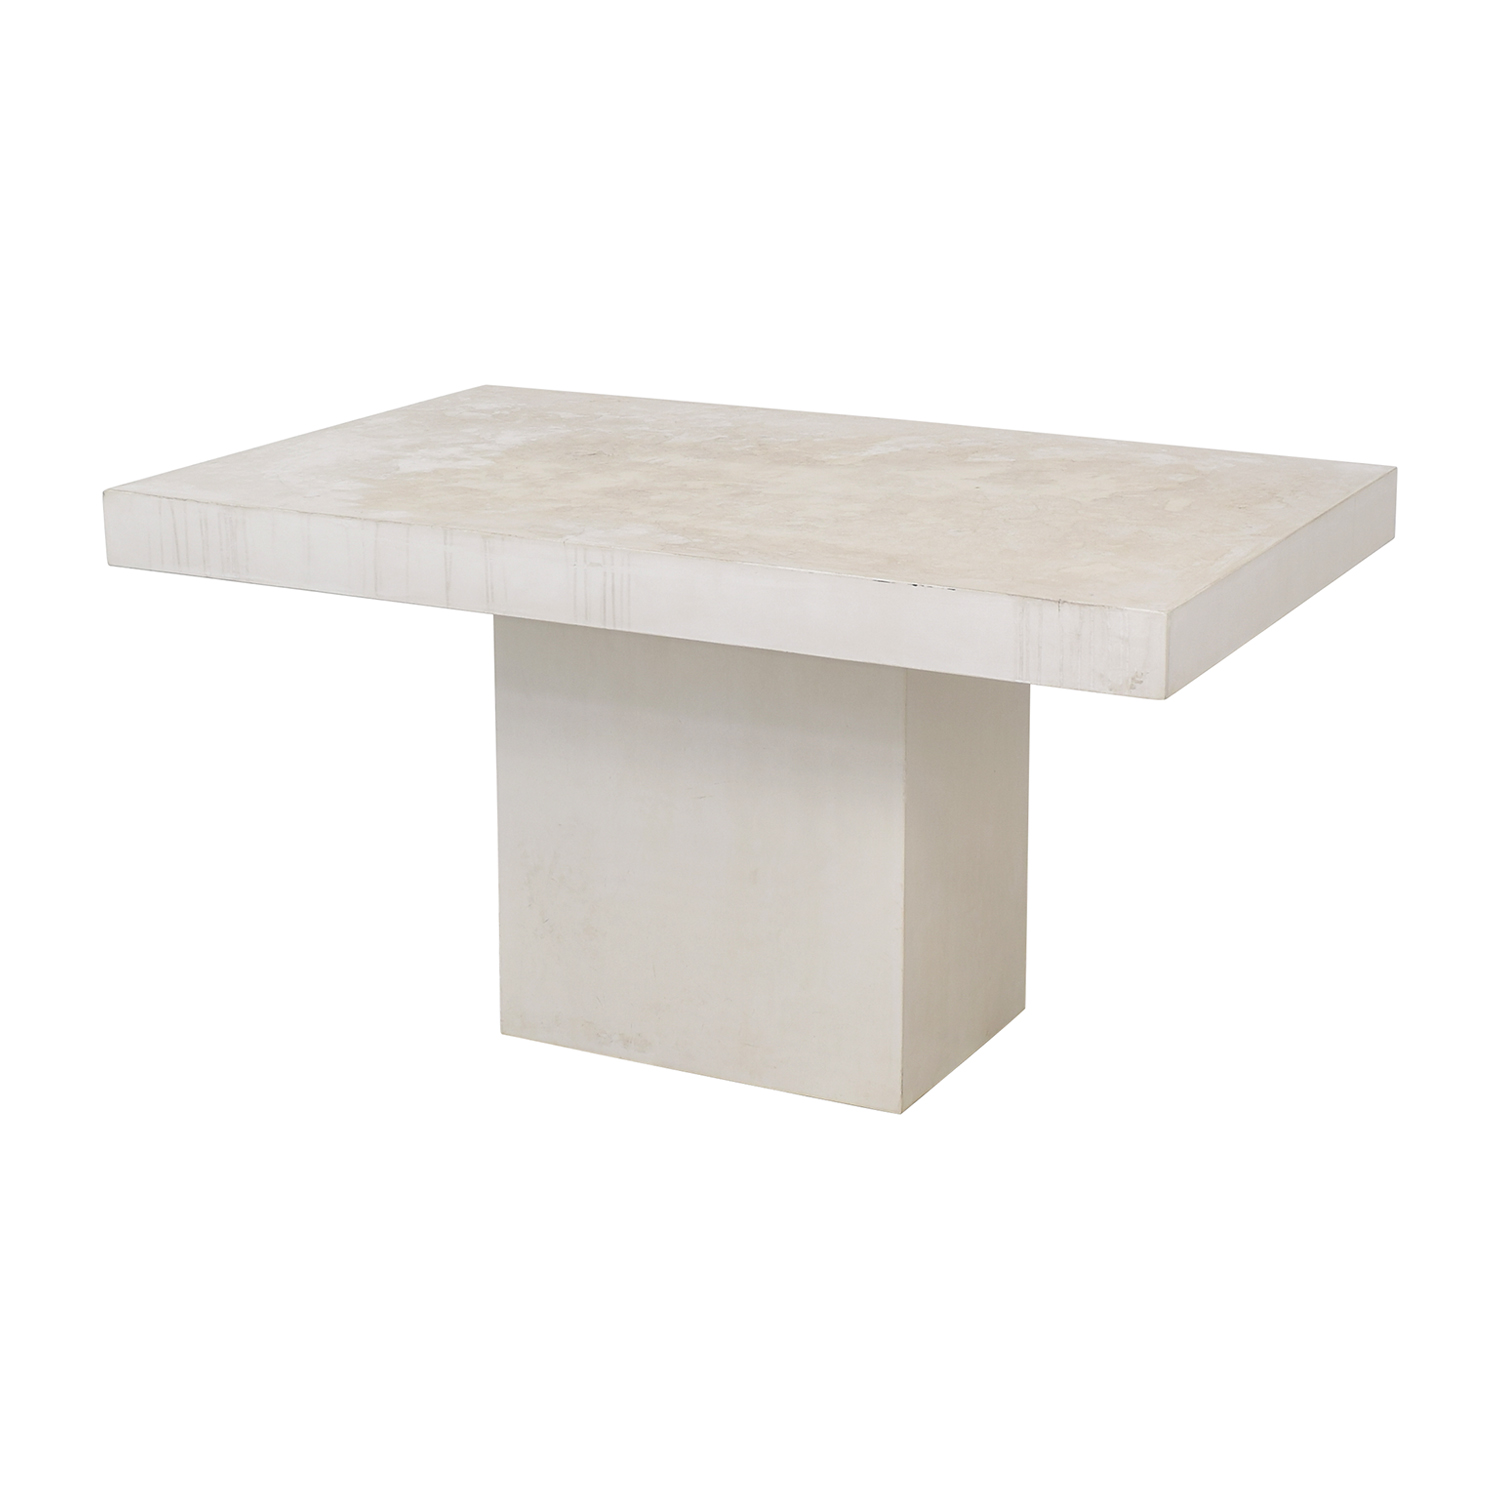 CB2 CB2 Fuze Ivory White Stone Dining Table second hand